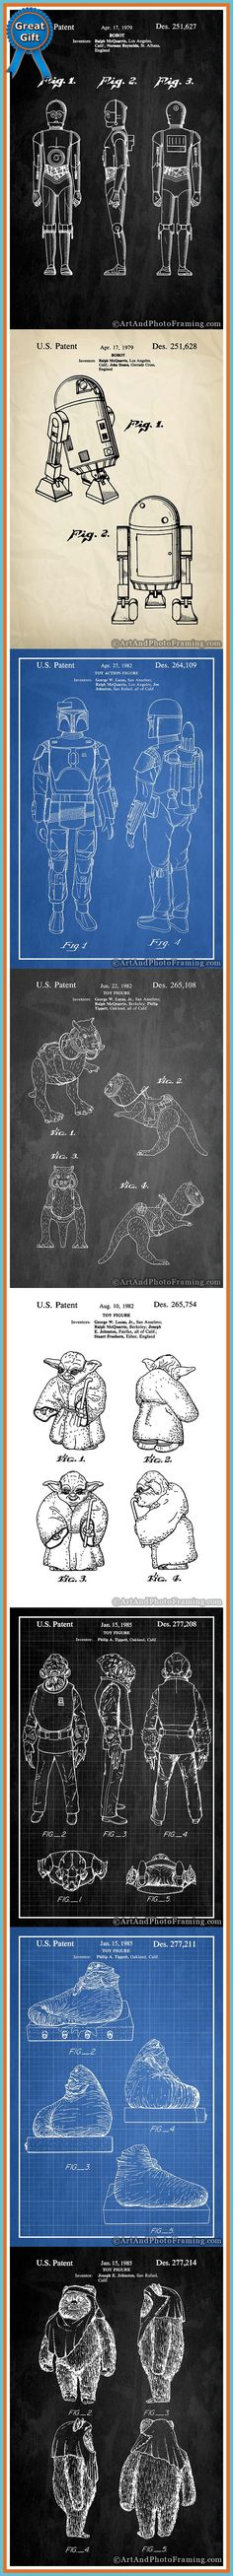 Star Wars Patent Poster Prints make great Christmas gifts for him from ArtAndPhotoFraming